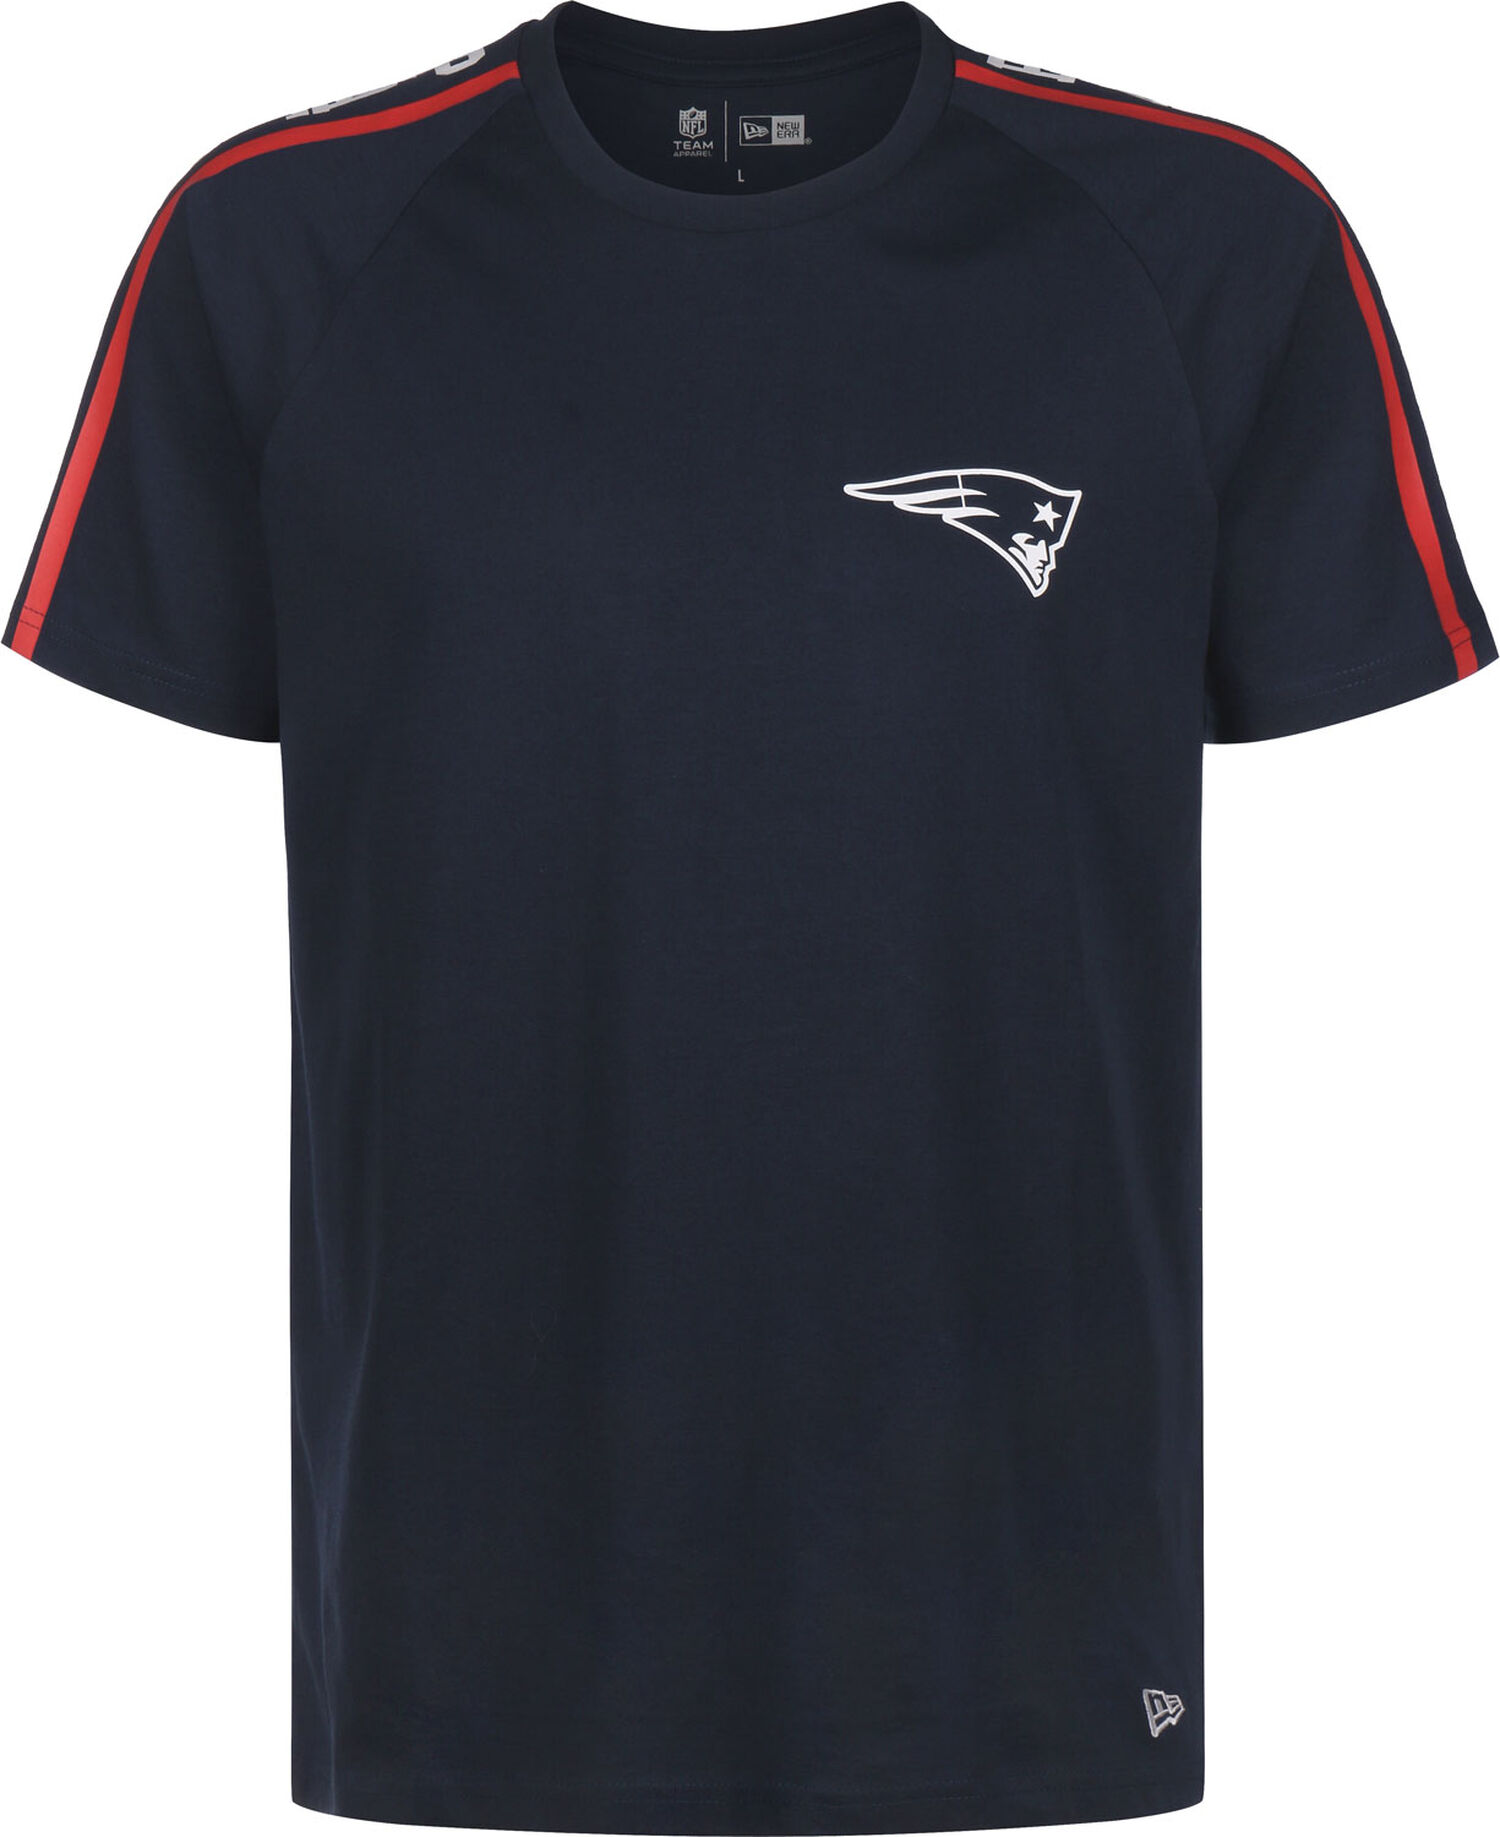 NFL Raglan Shoulder Print New England Patriots